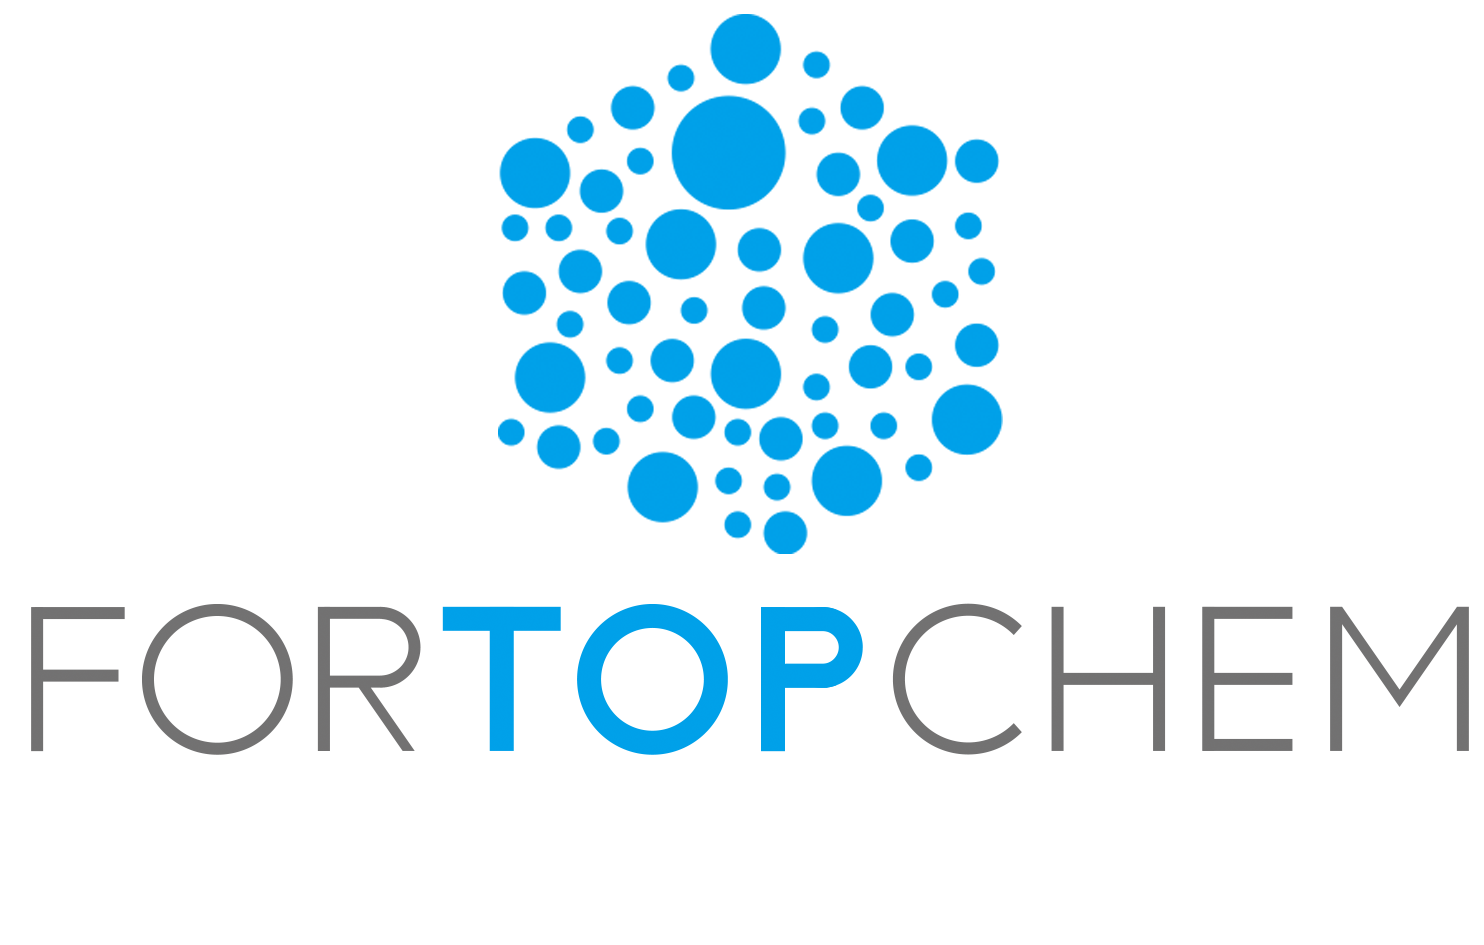 FORTOPCHEM TECHNOLOGY LIMITED